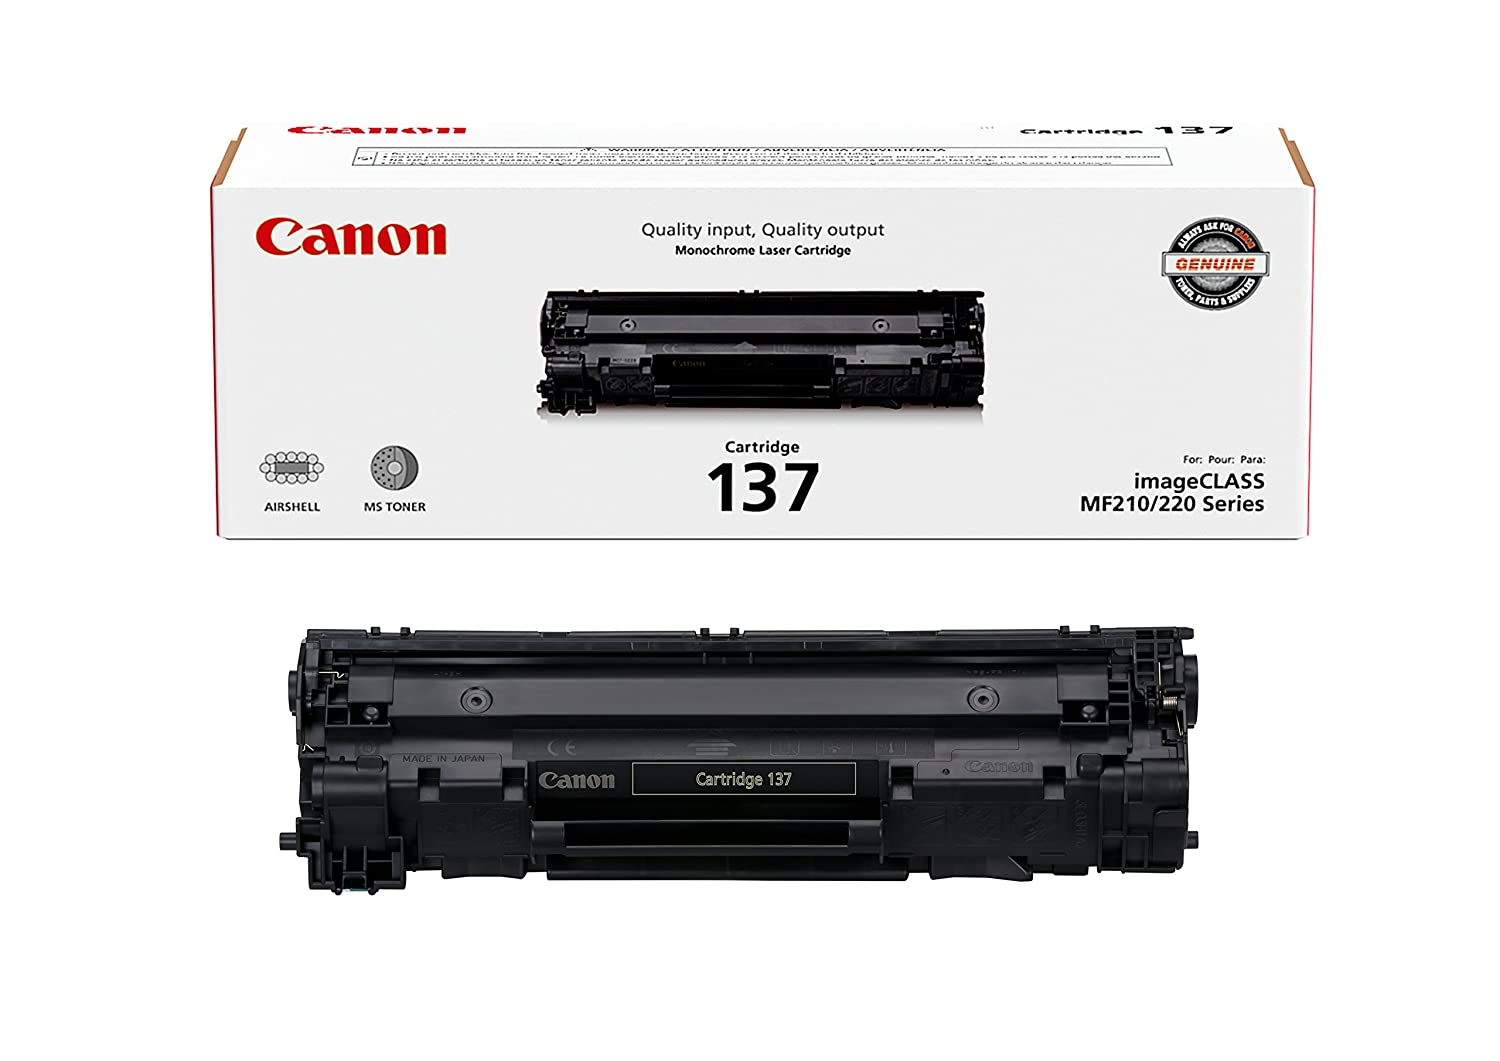 DRIVER FOR CANON MF230